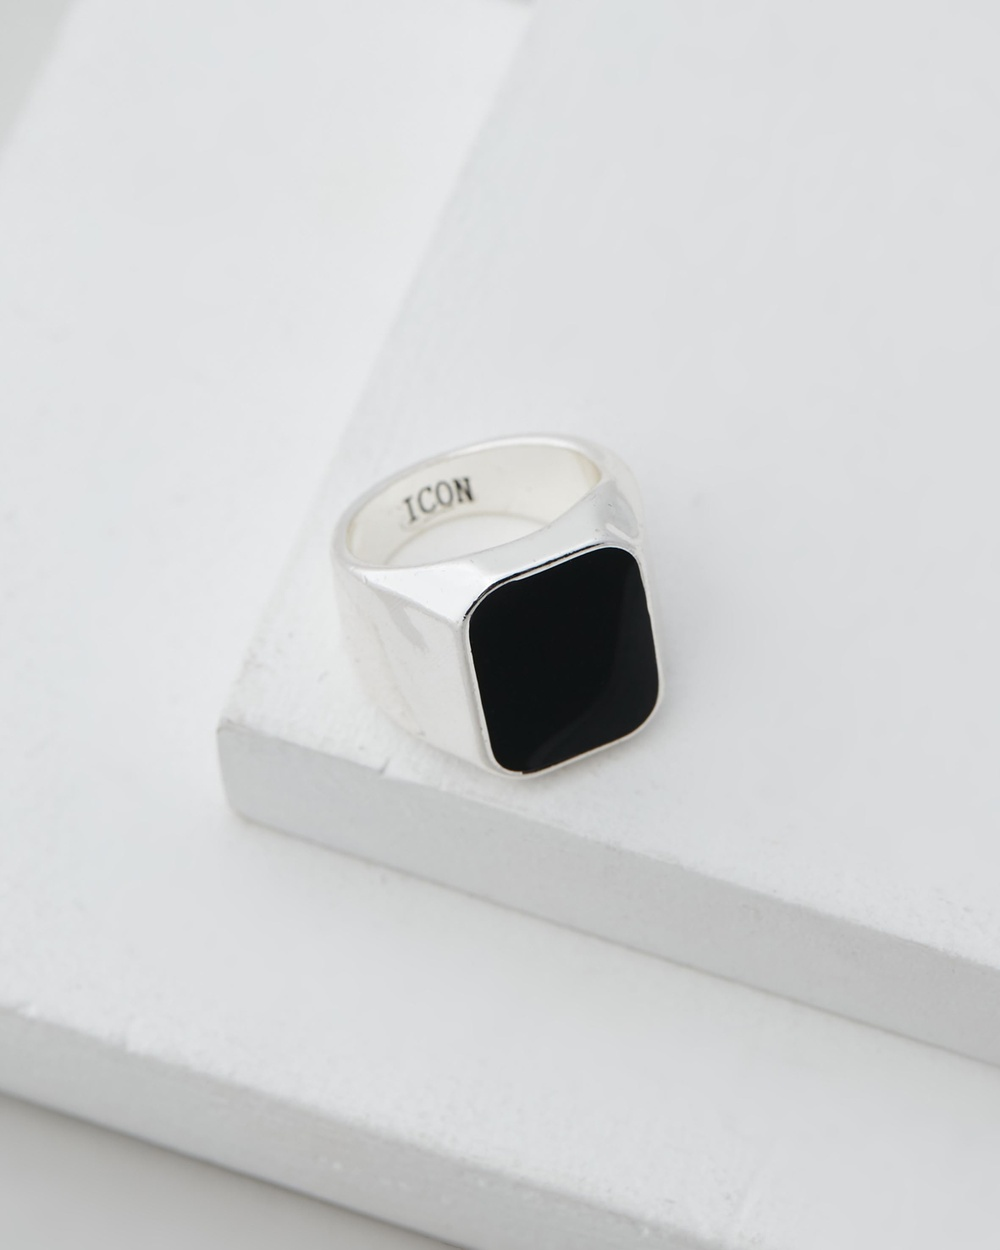 Icon Brand Deco Nuance Rectangle Enamel Ring Jewellery Silver